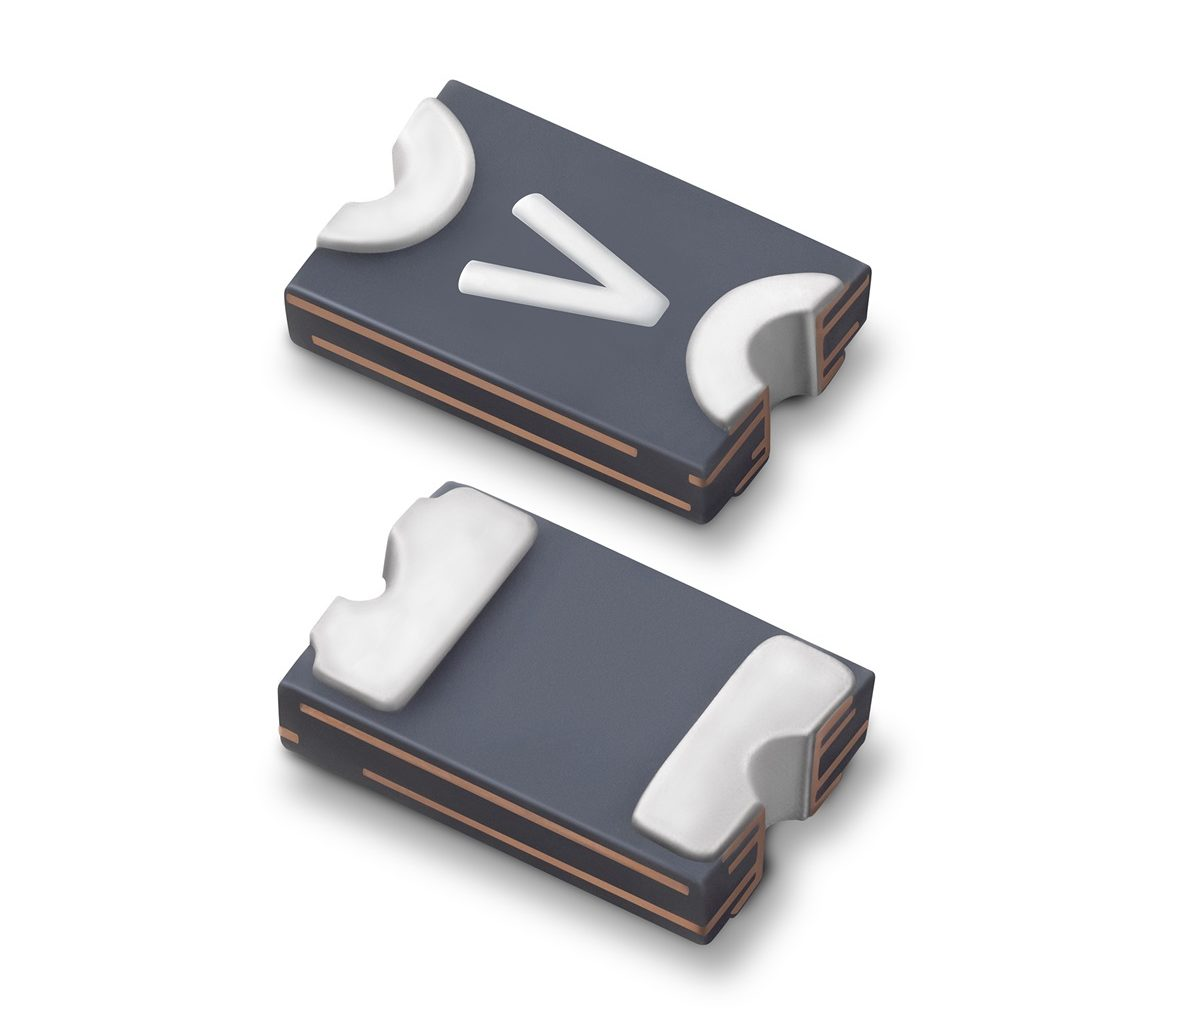 Littelfuse setP™ temperature indicator helps protect USB Type-C plugs from overheating